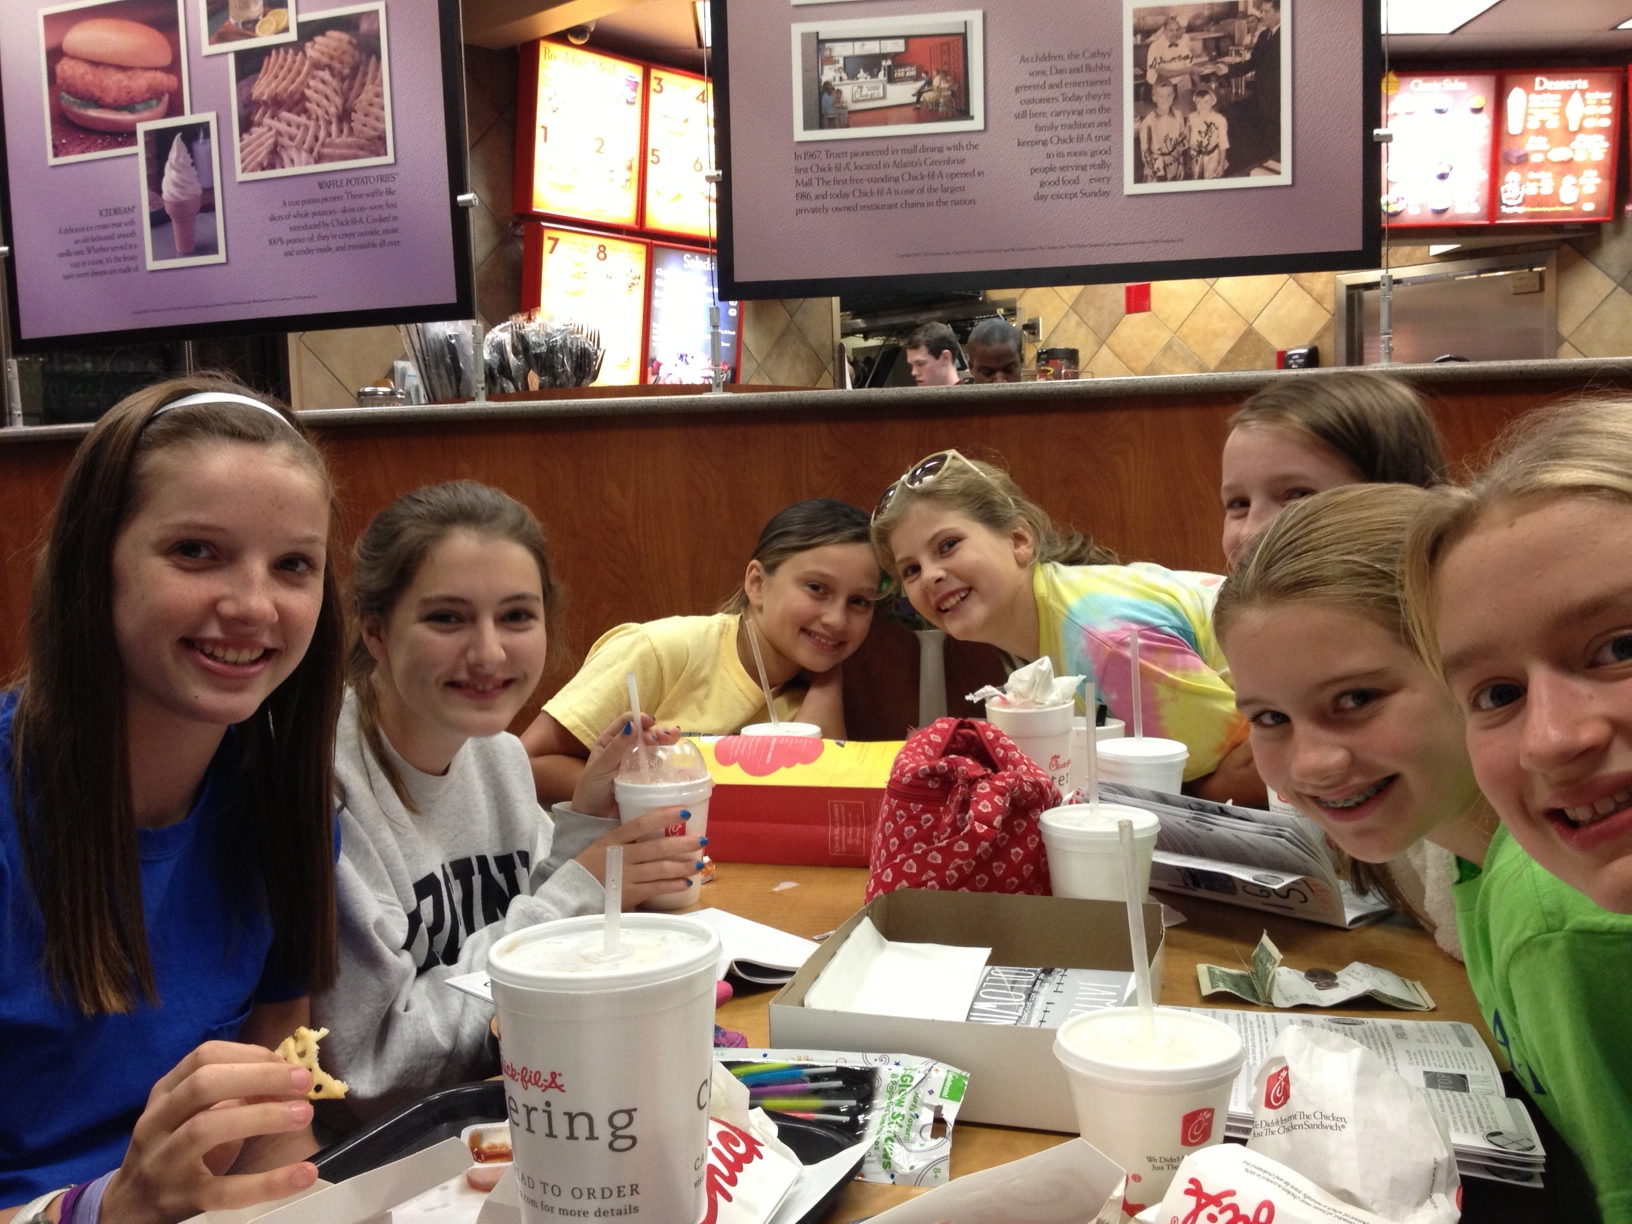 James for GIRLS at Chick-FIl-A in Atlanta